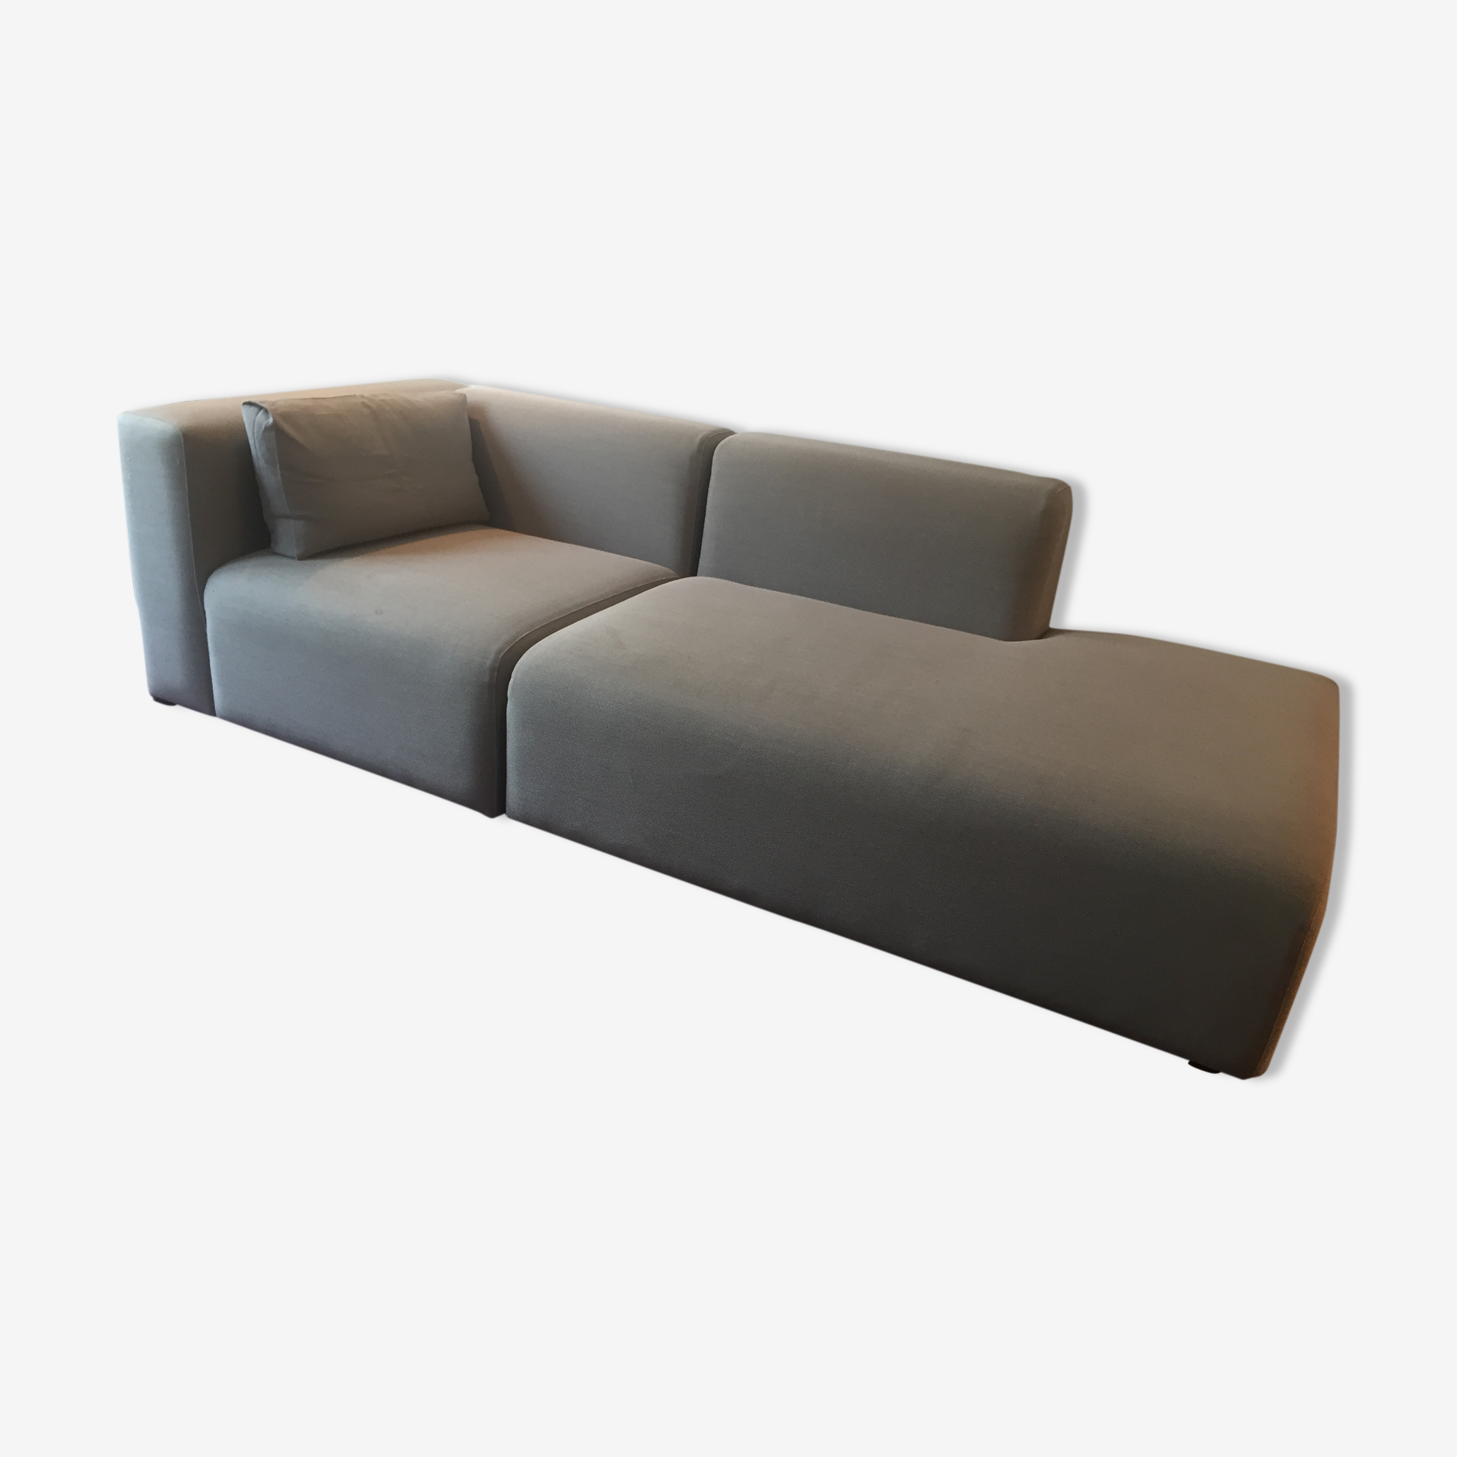 3 seater hay mags sofa